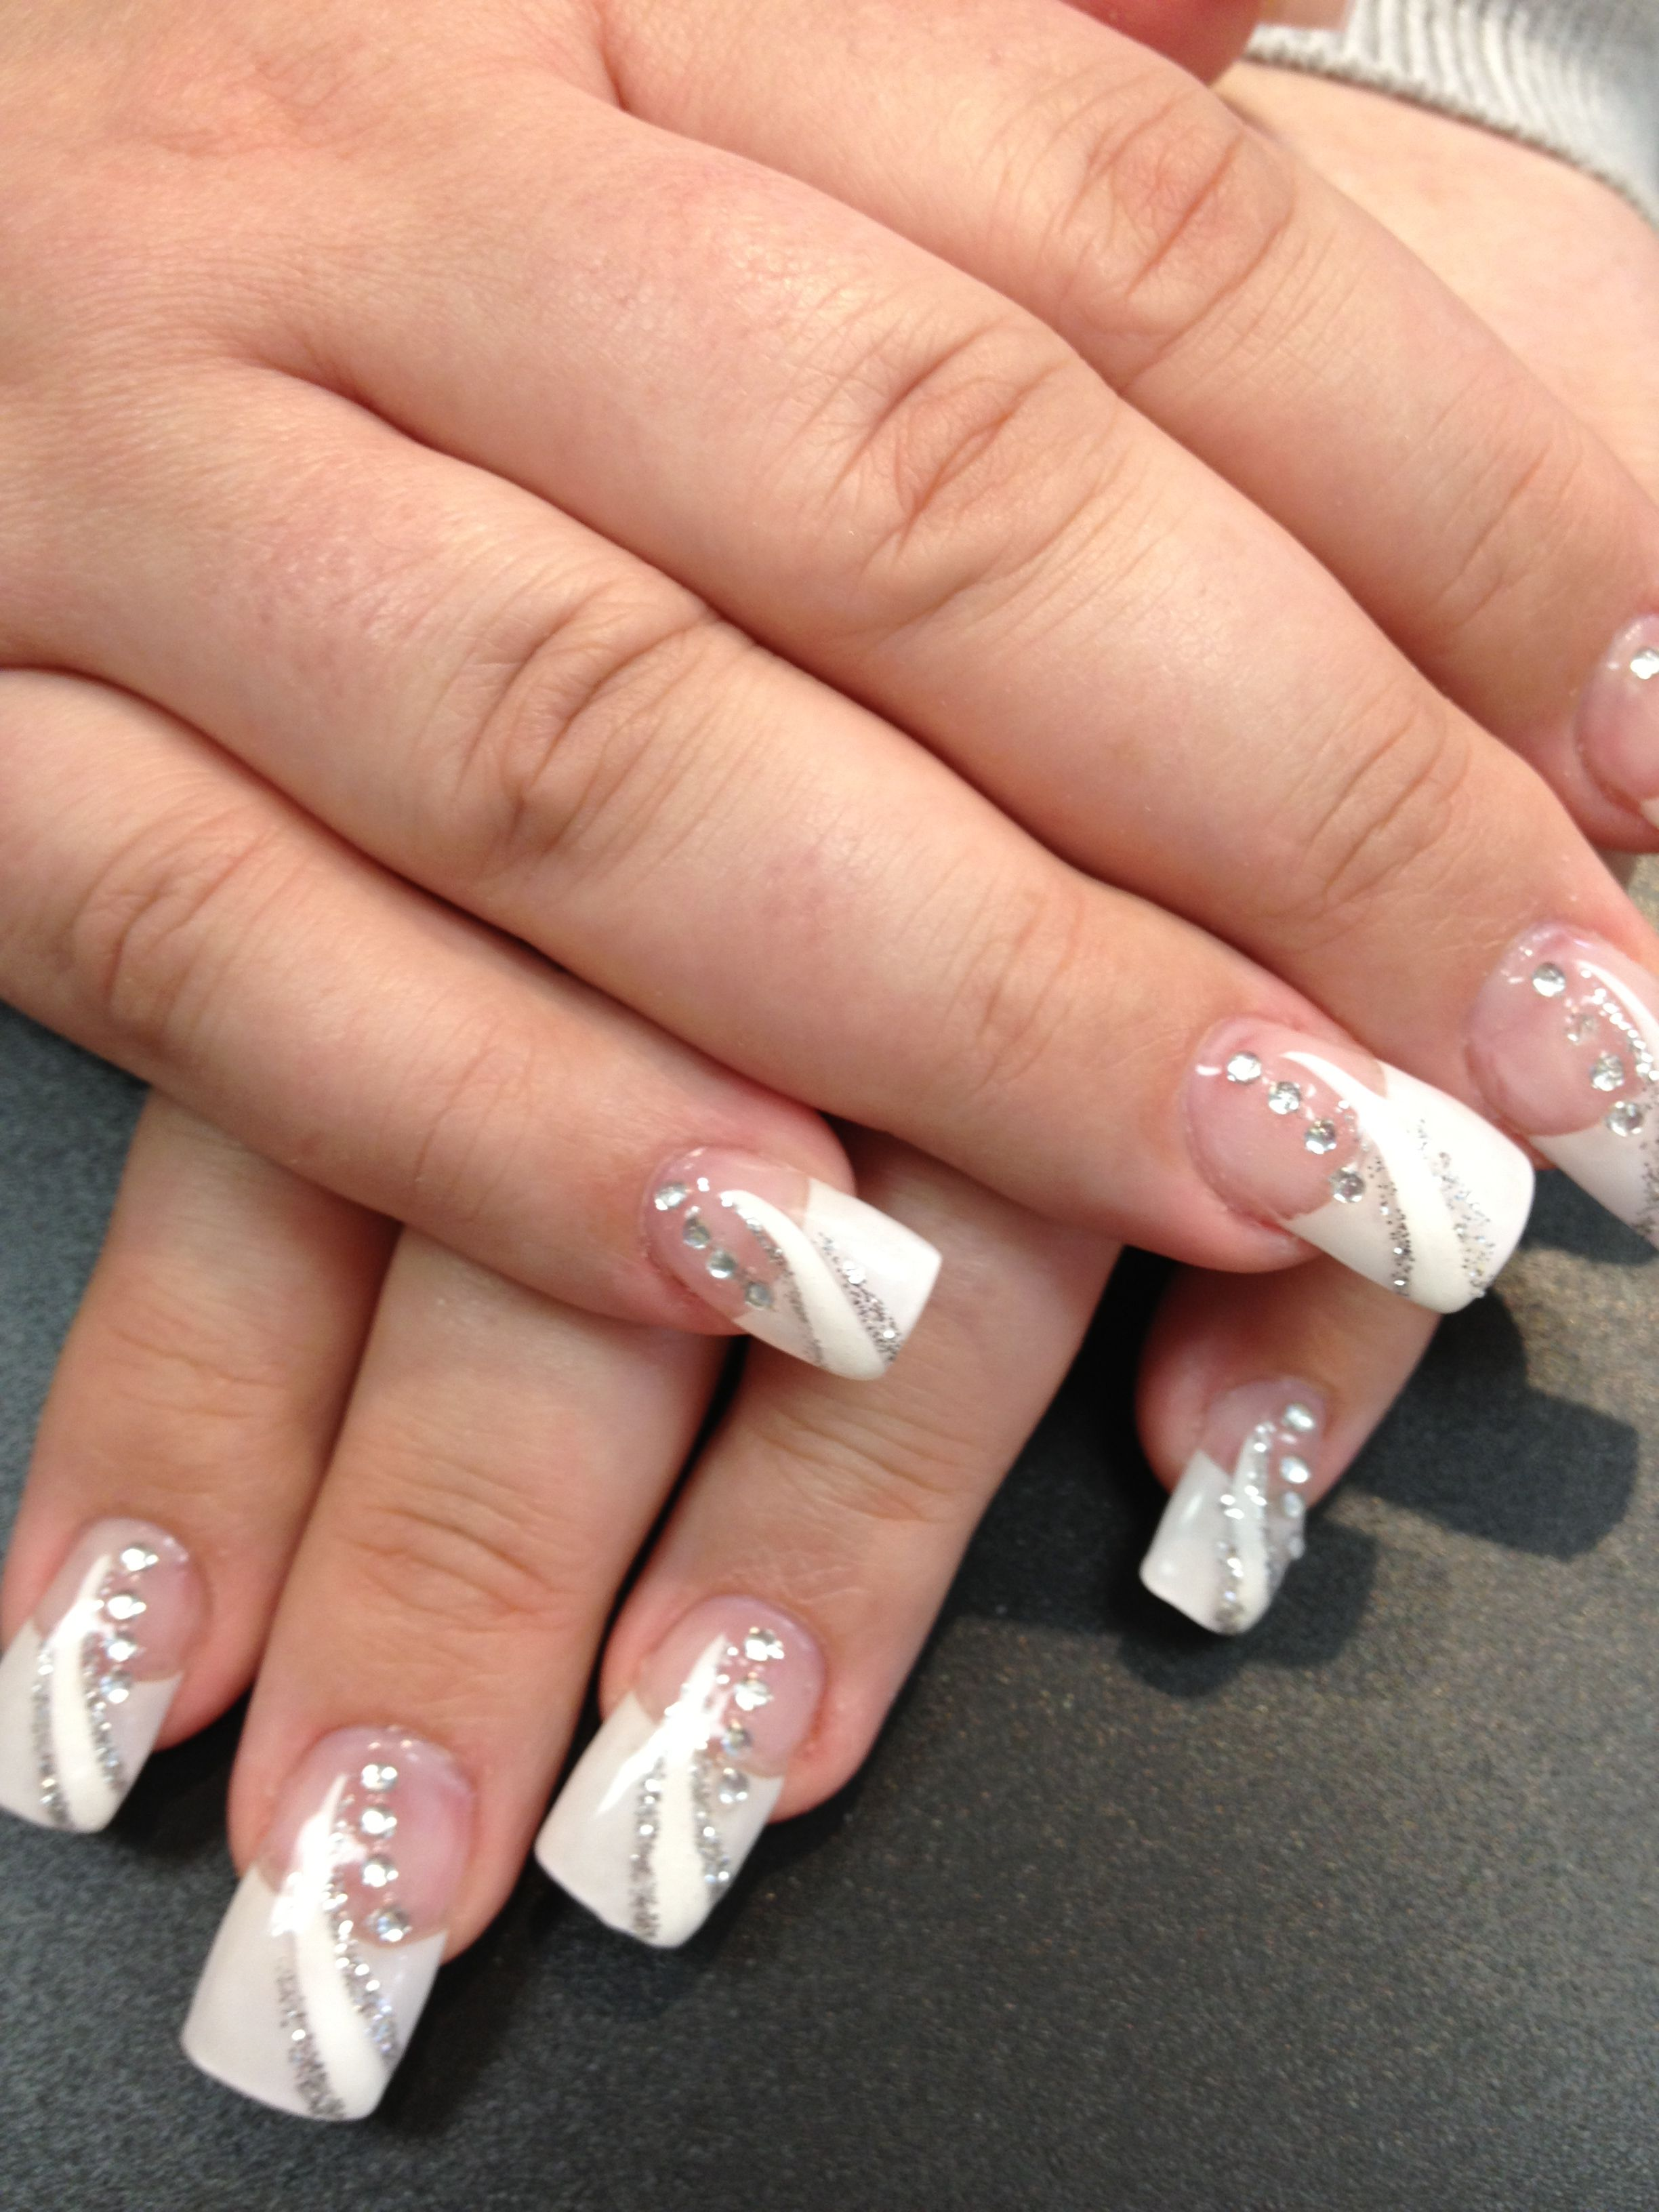 Solar Nails French Tips With White And Silver Design Women S